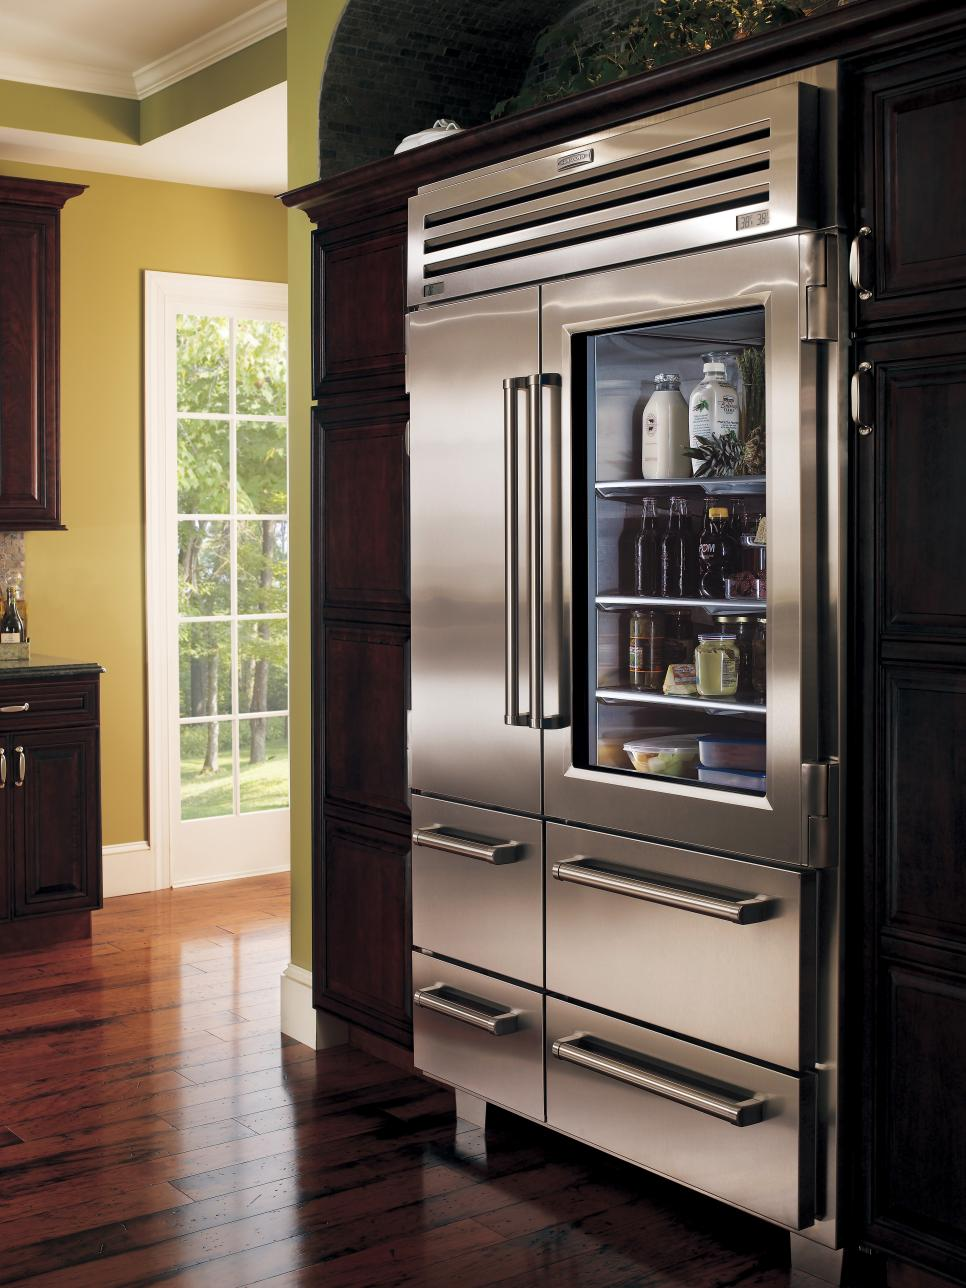 Uncategorized Luxurious Kitchen Appliances covetable kitchen appliances hgtv